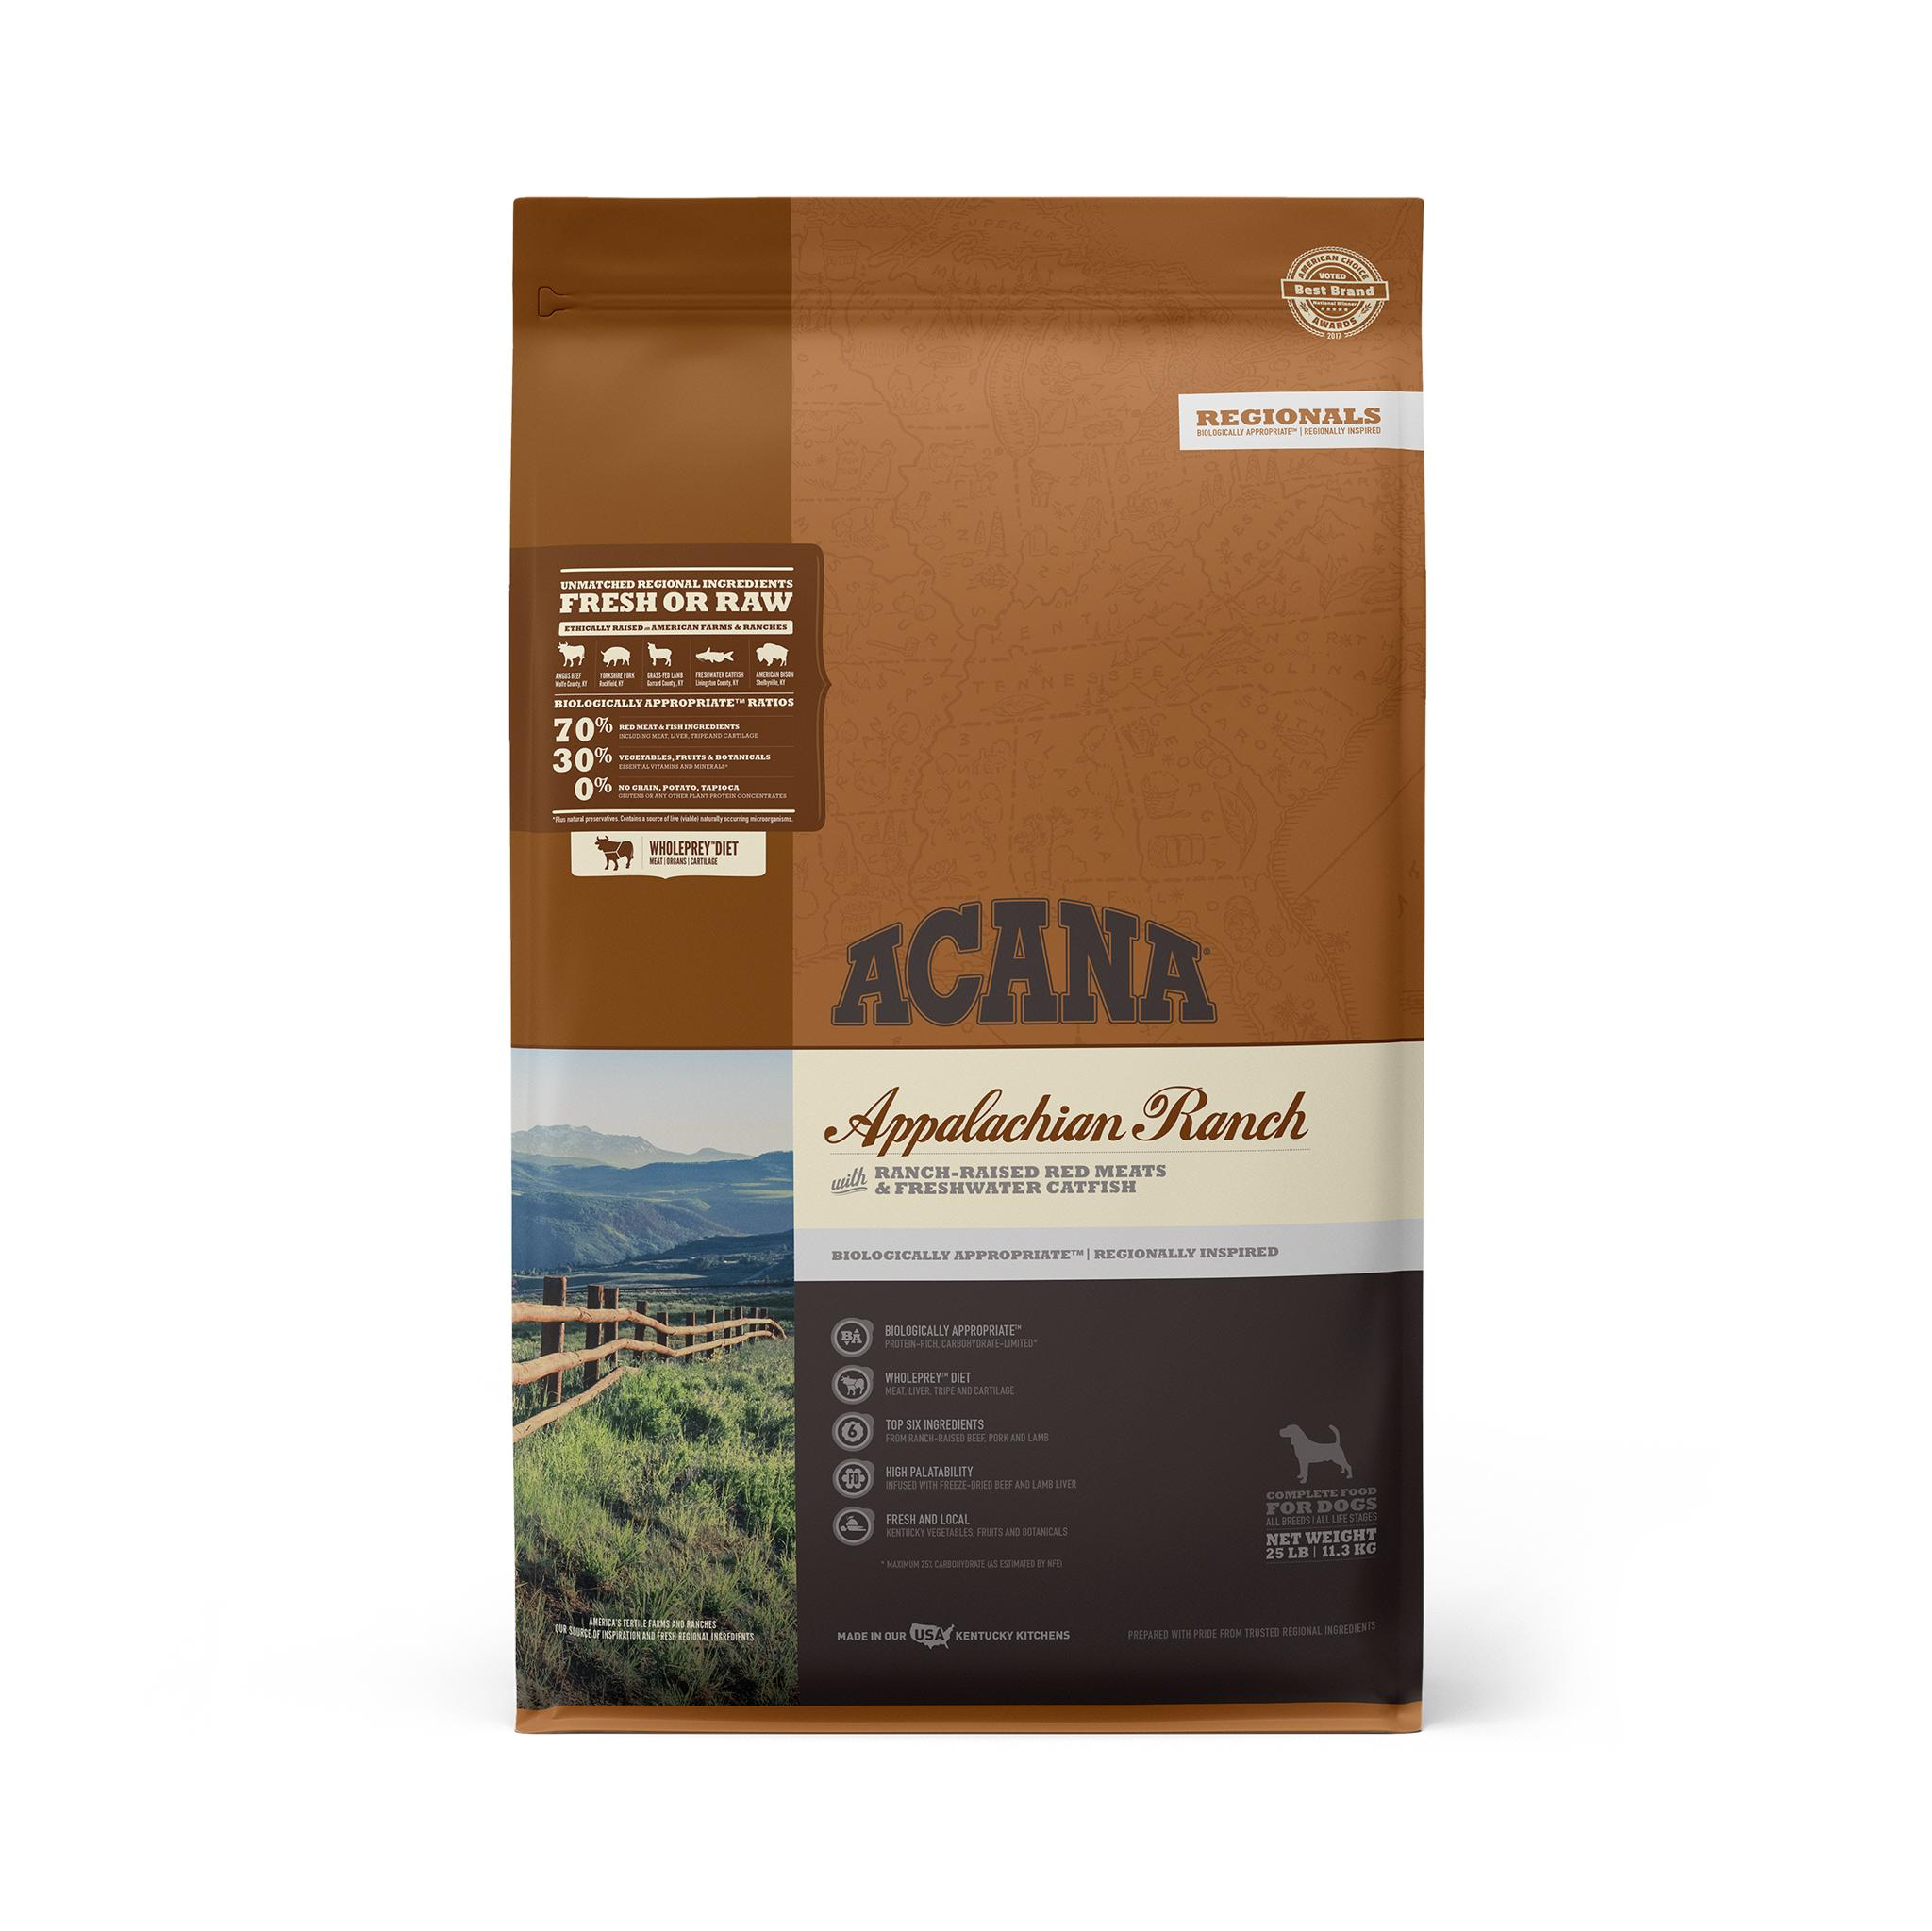 ACANA Regionals Appalachian Ranch Grain-Free Dry Dog Food, 25-lb